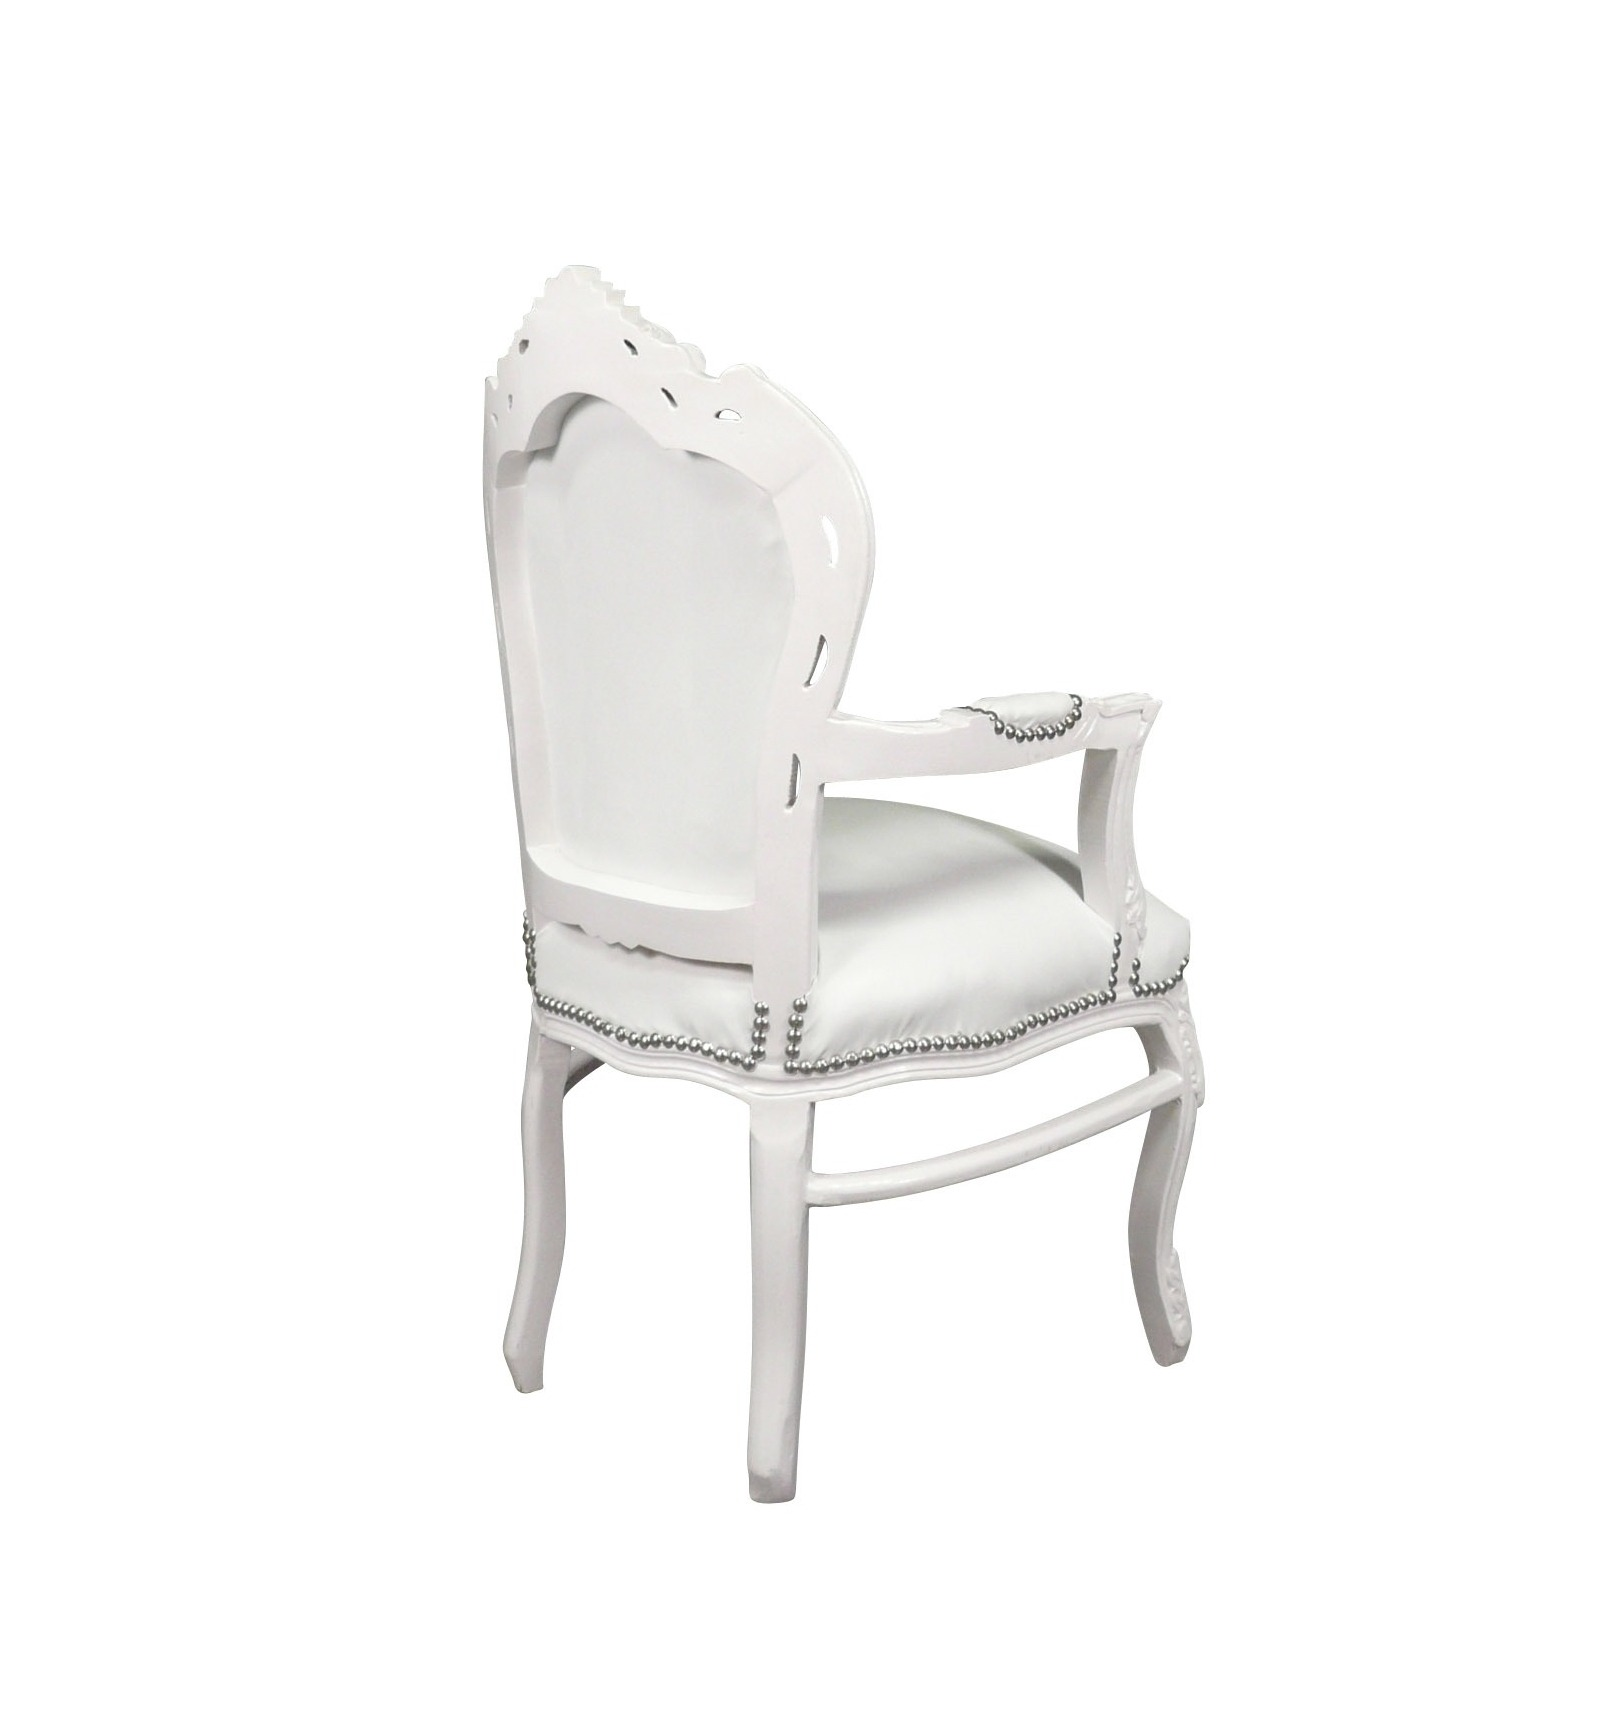 fauteuil baroque blanc mobilier de style. Black Bedroom Furniture Sets. Home Design Ideas